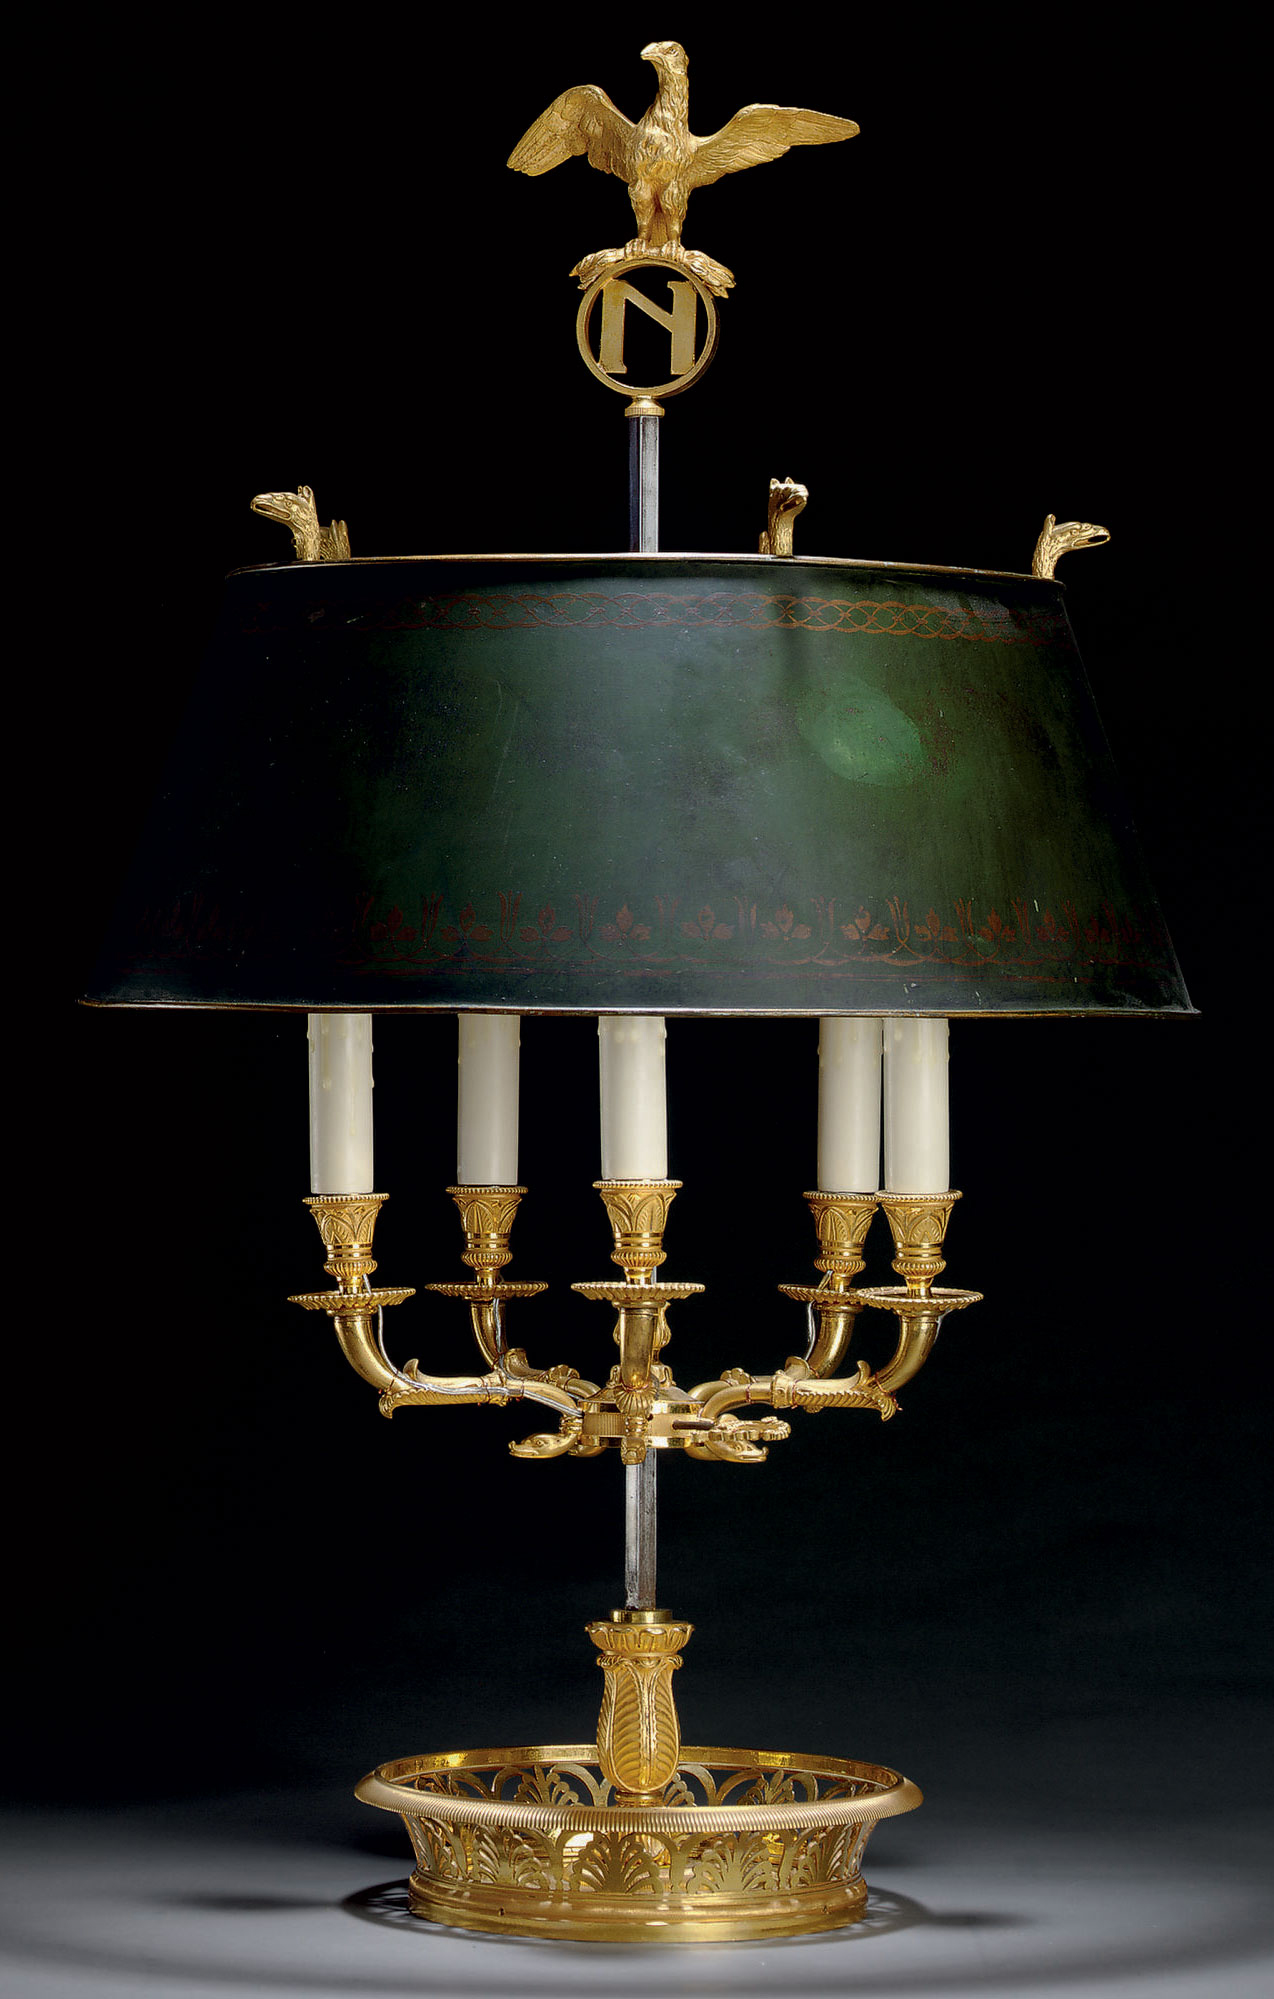 AN EMPIRE ORMOLU BOUILLOTTE LAMP